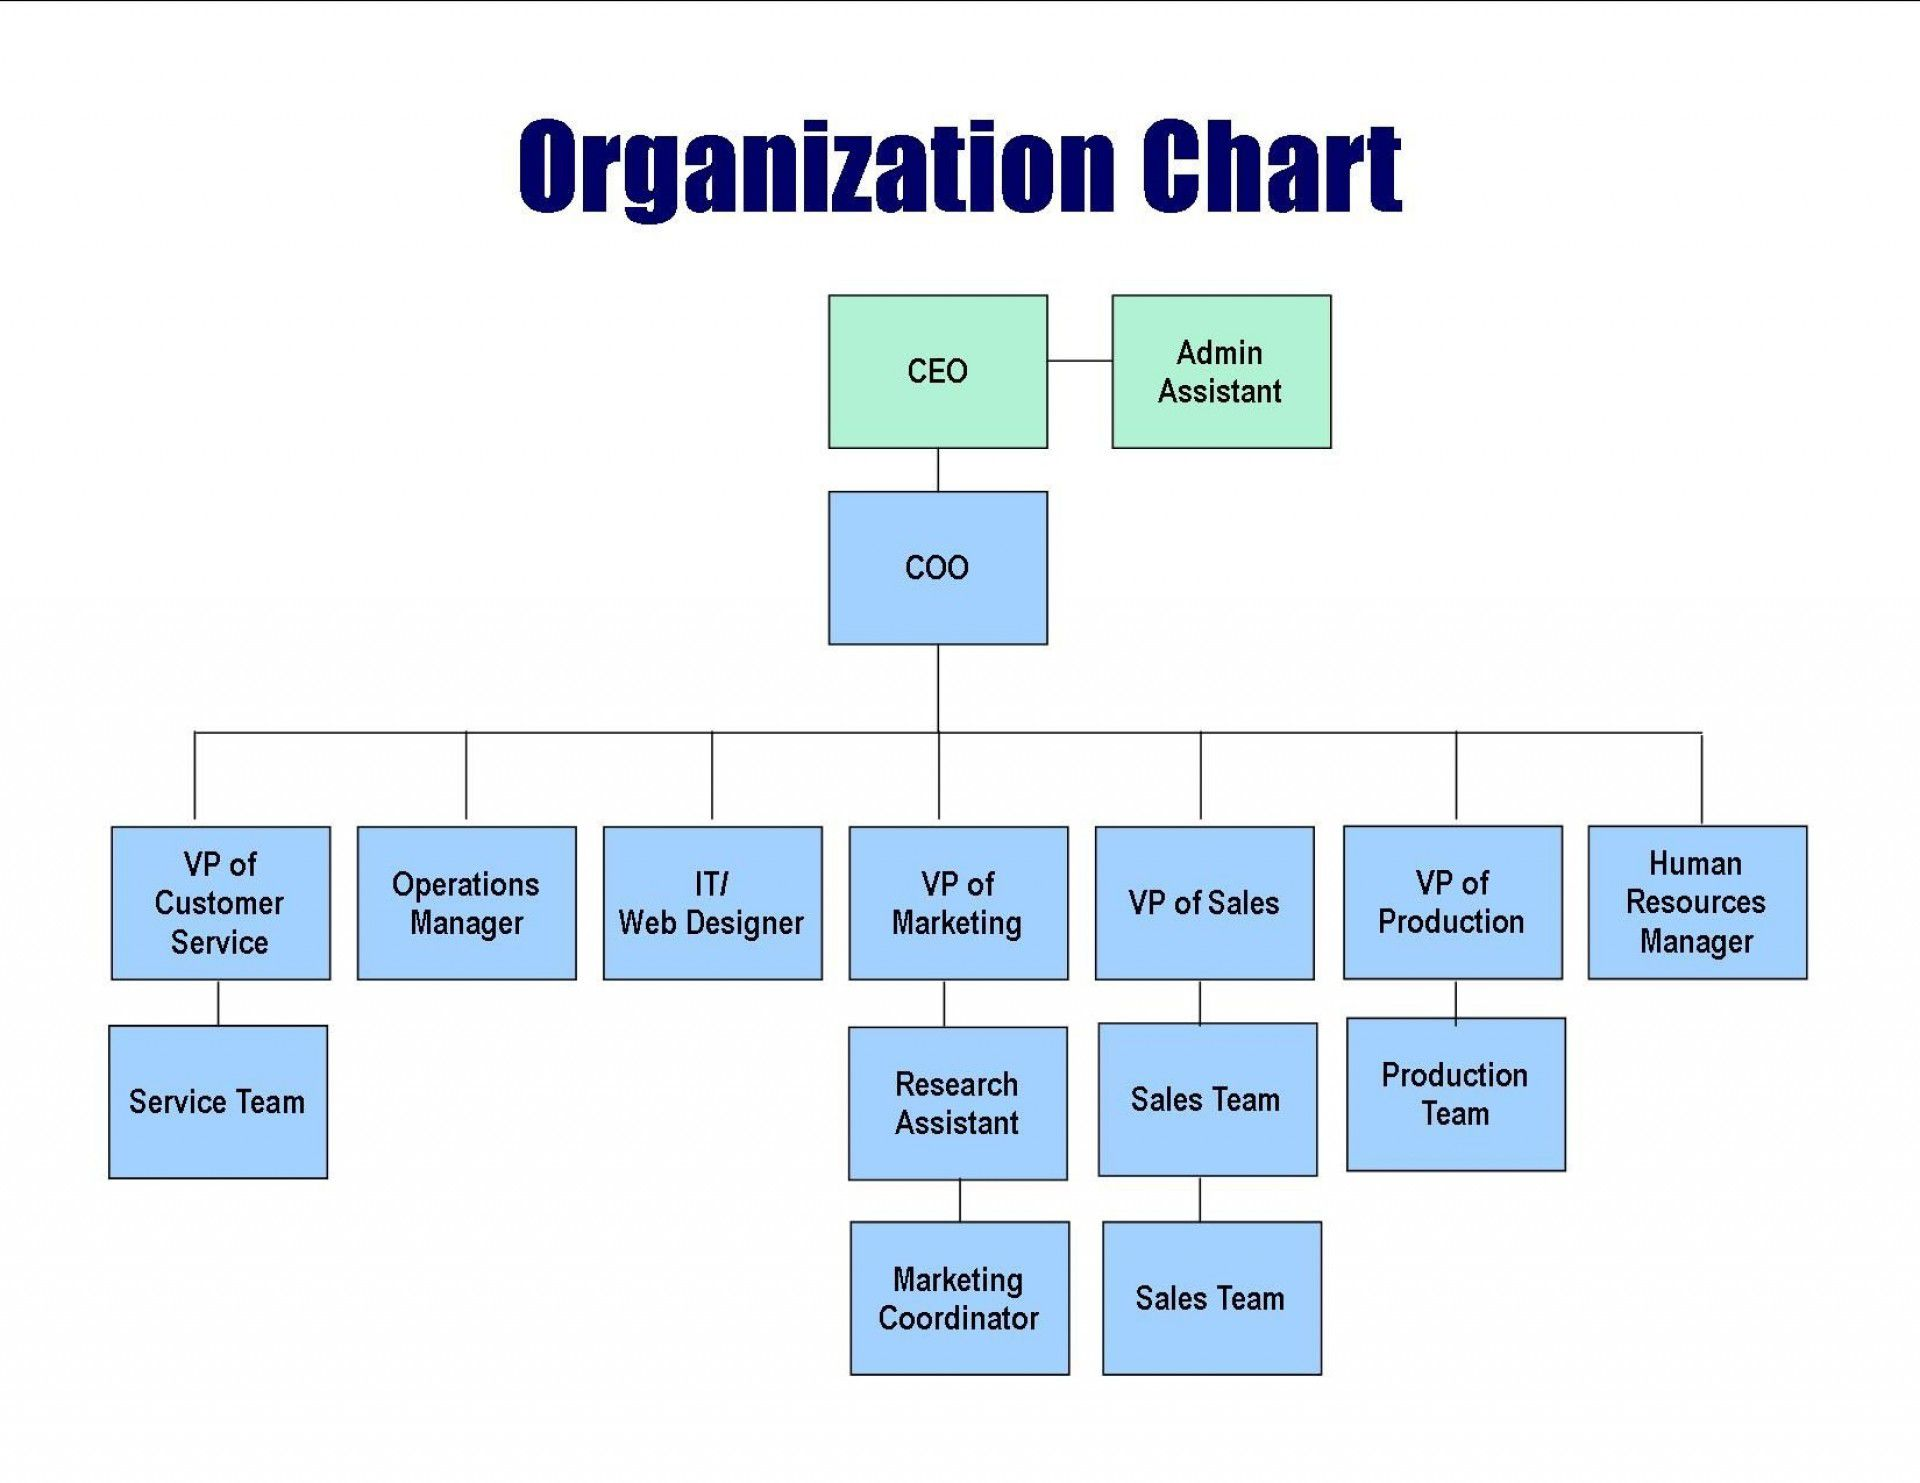 004 Rare Organizational Chart Template Word Concept  Simple Free Download 2013 2010Full